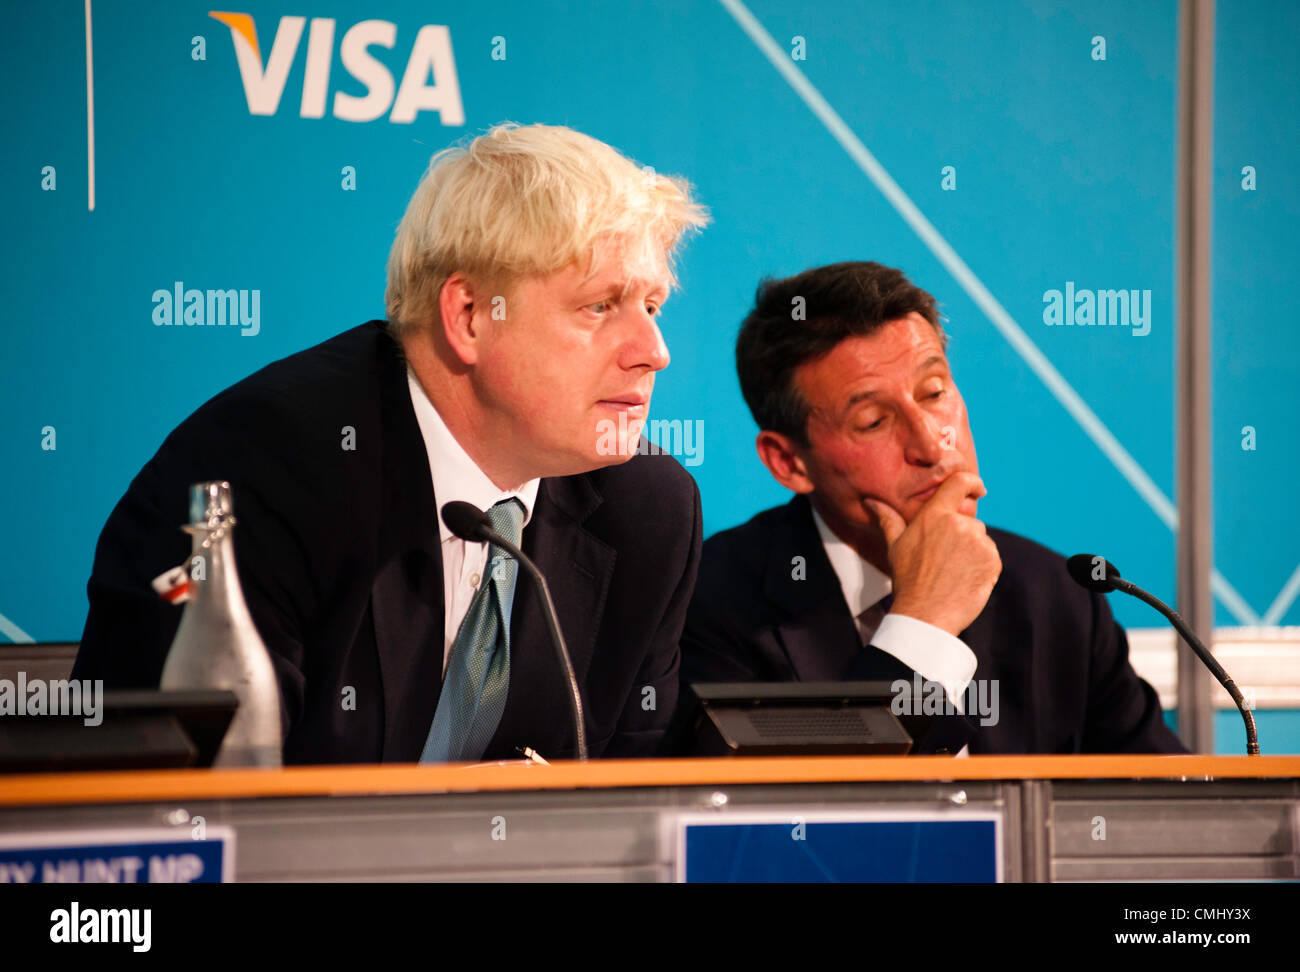 London, UK – 13 August 2012: Boris Johnson and Sebastian Coe during the final press conference of the Olympic Games - Stock Image